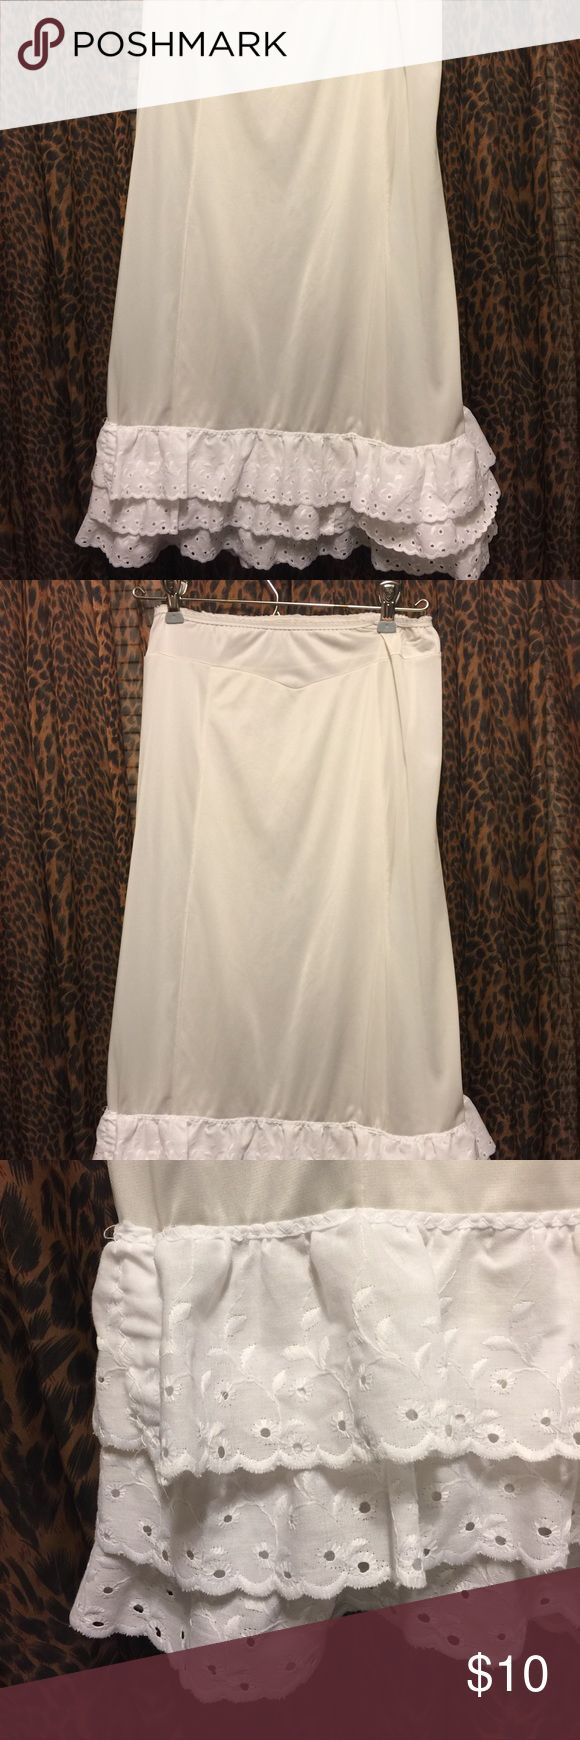 Medium slip/skirt extender. White skirt extender. This is for an white slip/ skirt extender! Make your skirts or shirts longer to wear with your tights! Size medium! Tops Tunics